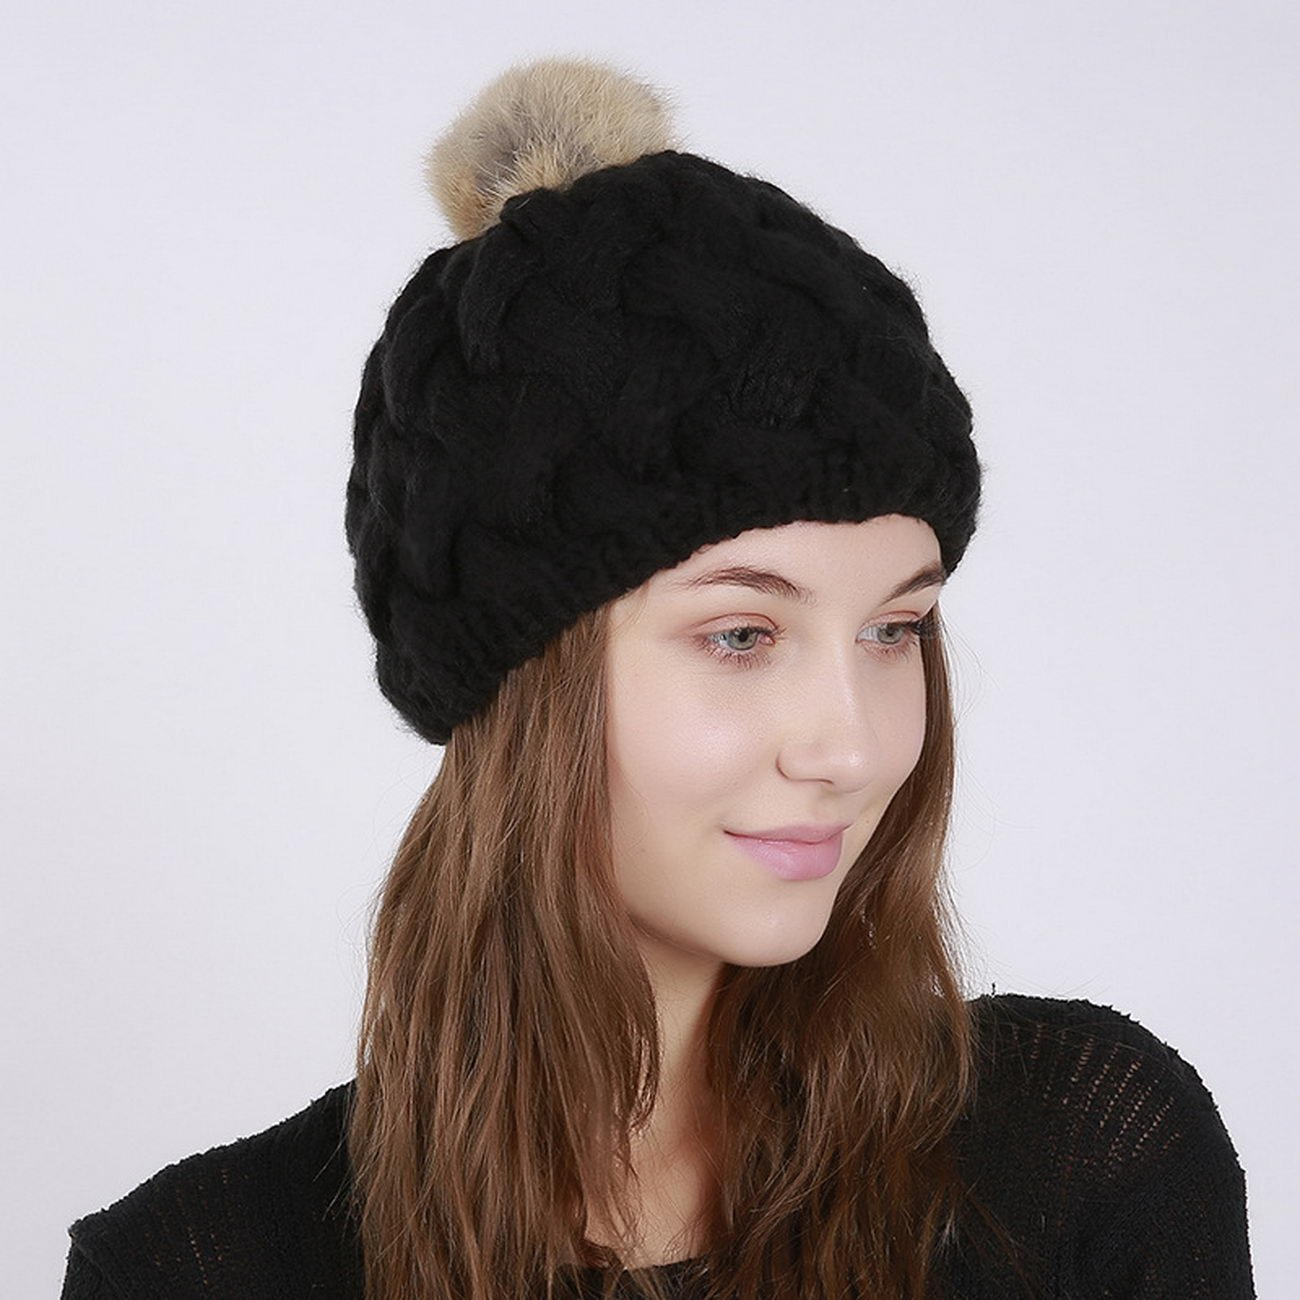 fa31972e251a Amazon.com  KUAILEJIA new solid bamboo ladies wool hat rabbit fur ball  knitted hat warm wool hat ladie  Sports   Outdoors